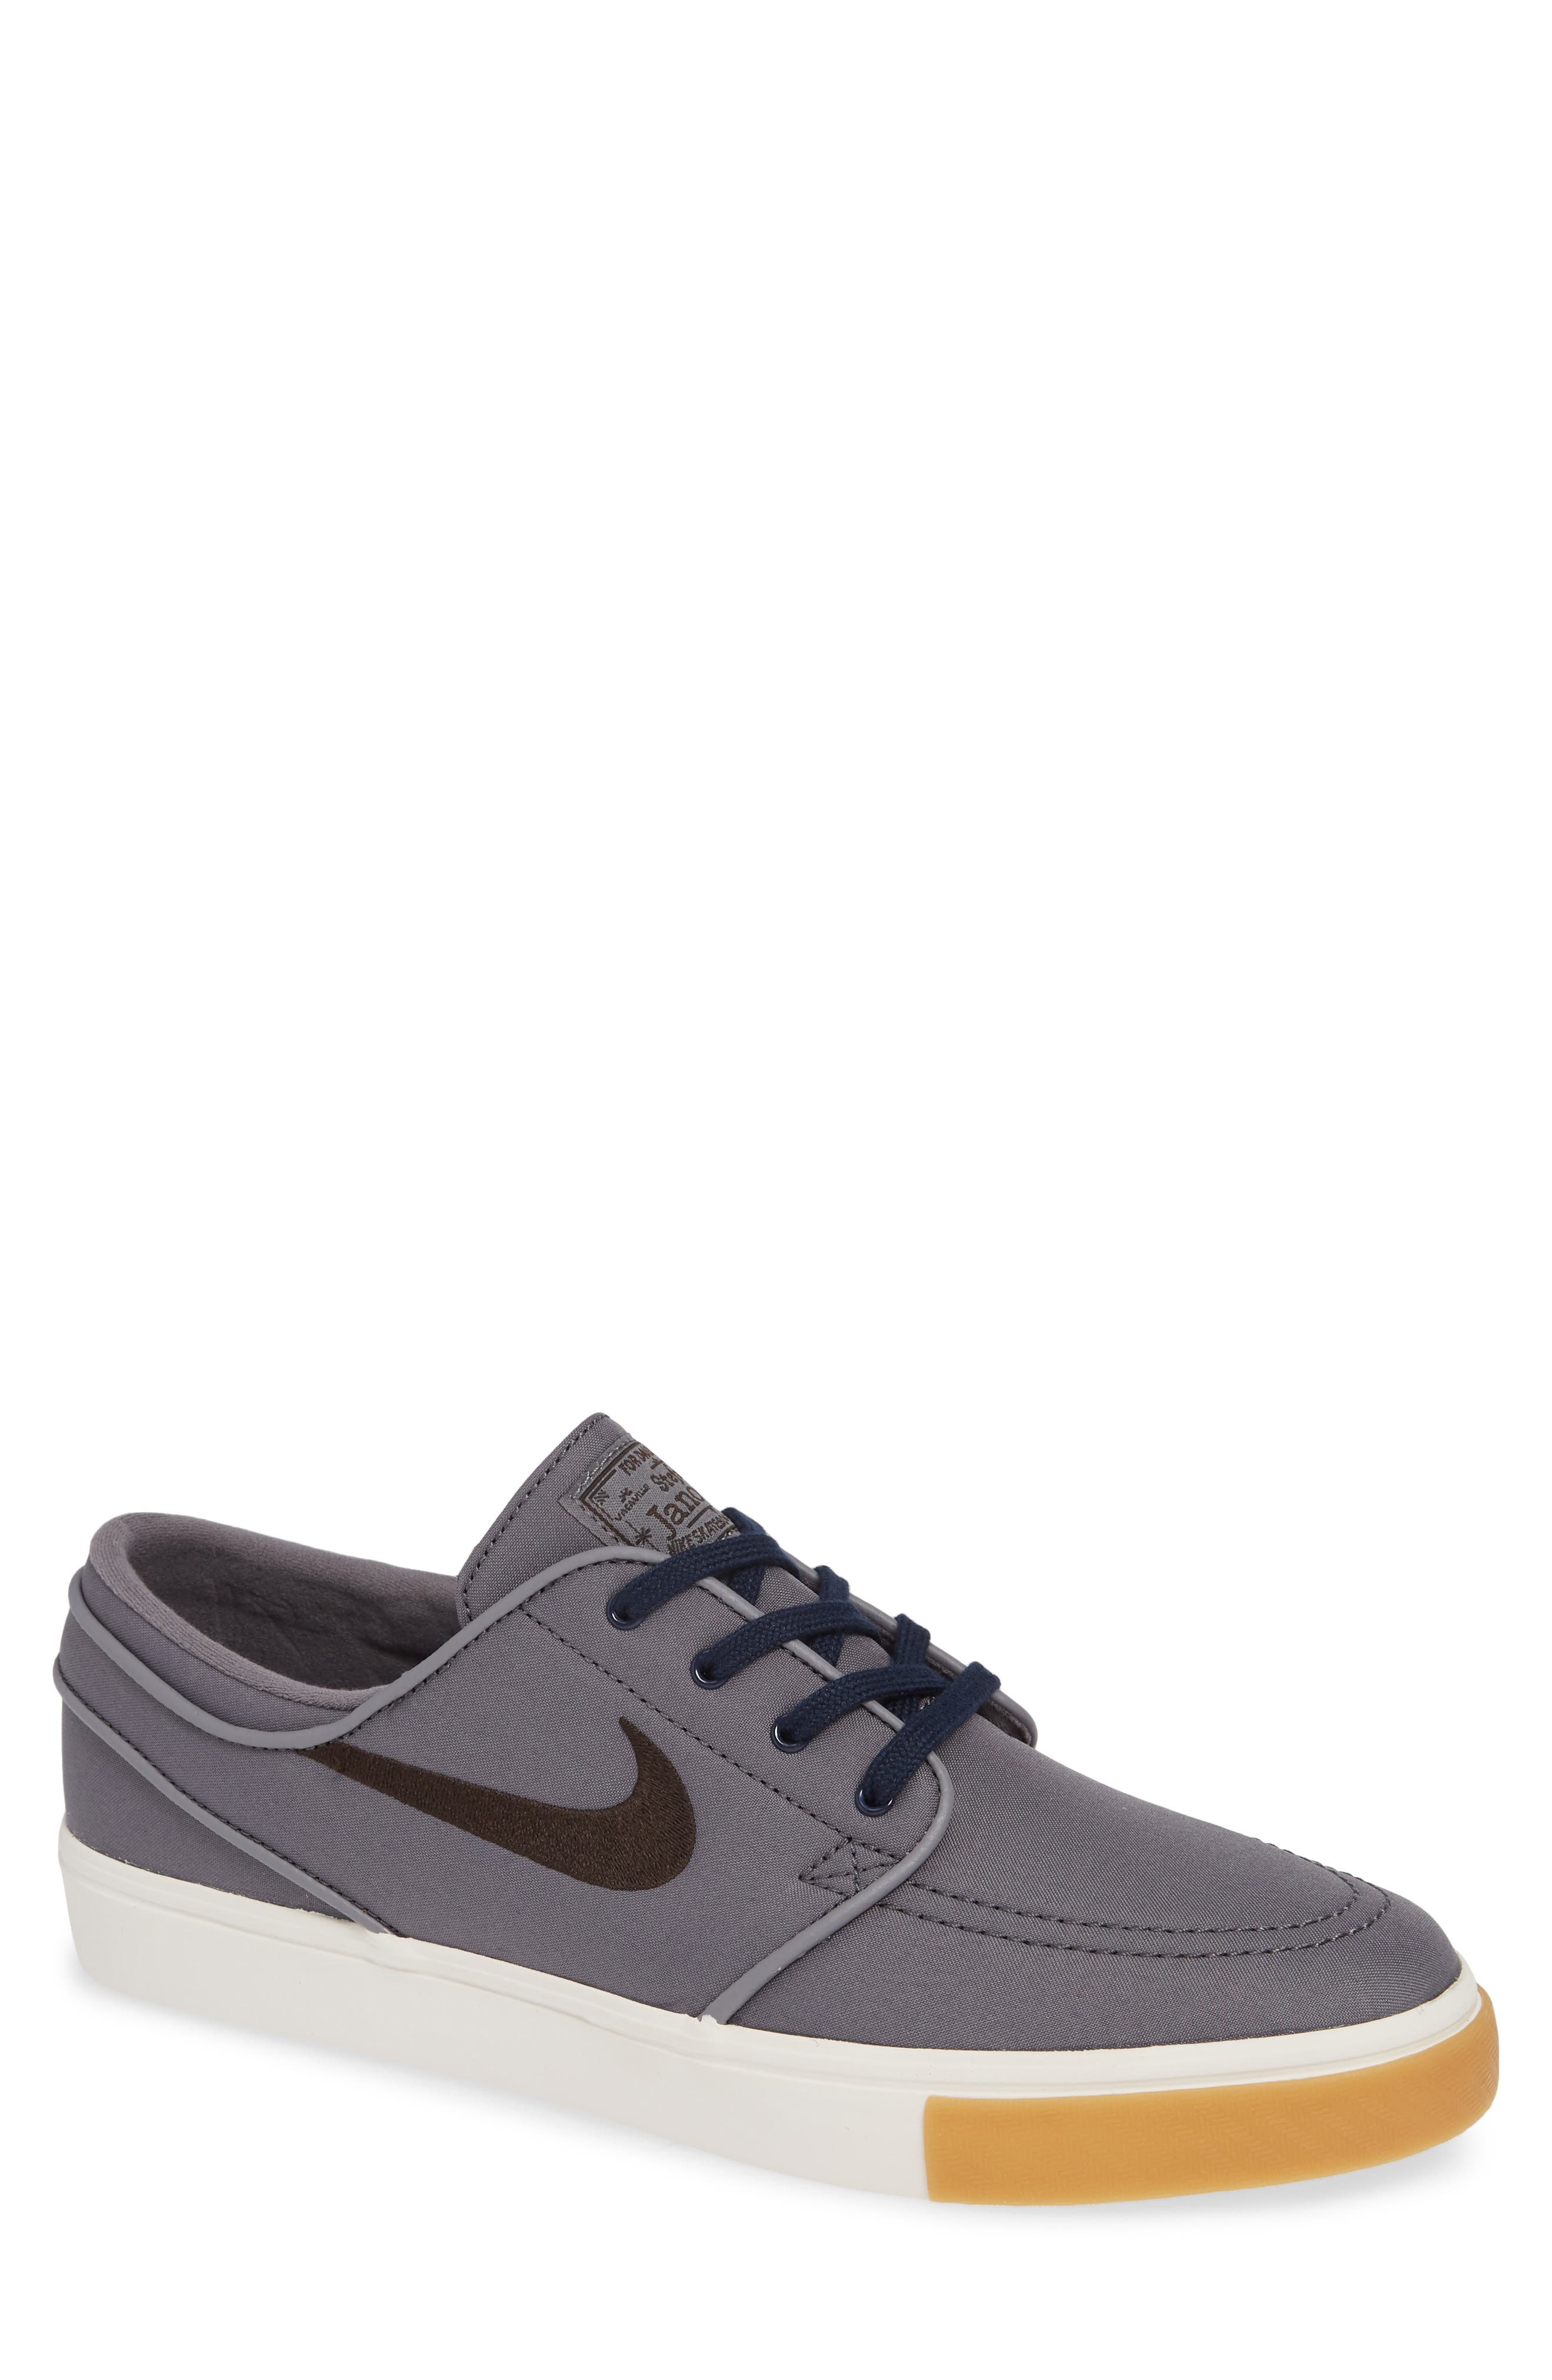 a2ce69a1609 5924b bdb6b  coupon code for cheap nike sb skate shoes 2eee5 49f13